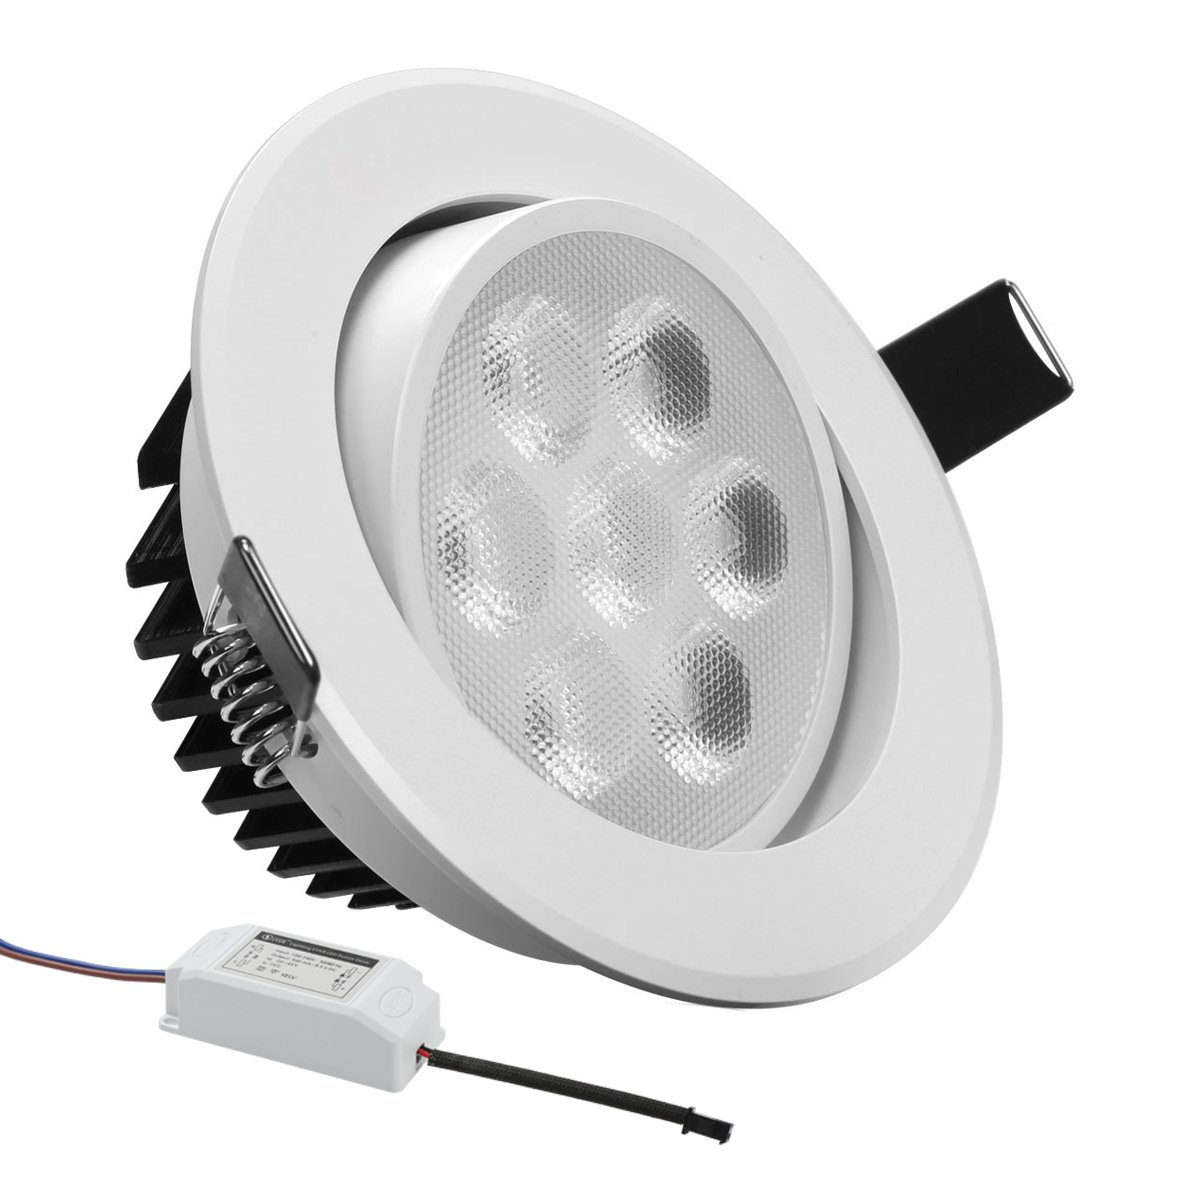 LE 7W 3.5-Inch LED Recessed Lighting 75W Halogen Bulbs Equivalent LED Driver Included 500lm Daylight White 6000K Recessed Ceiling Lights Recessed ...  sc 1 st  Amazon.com & LE 7W 3.5-Inch LED Recessed Lighting 75W Halogen Bulbs Equivalent ... azcodes.com